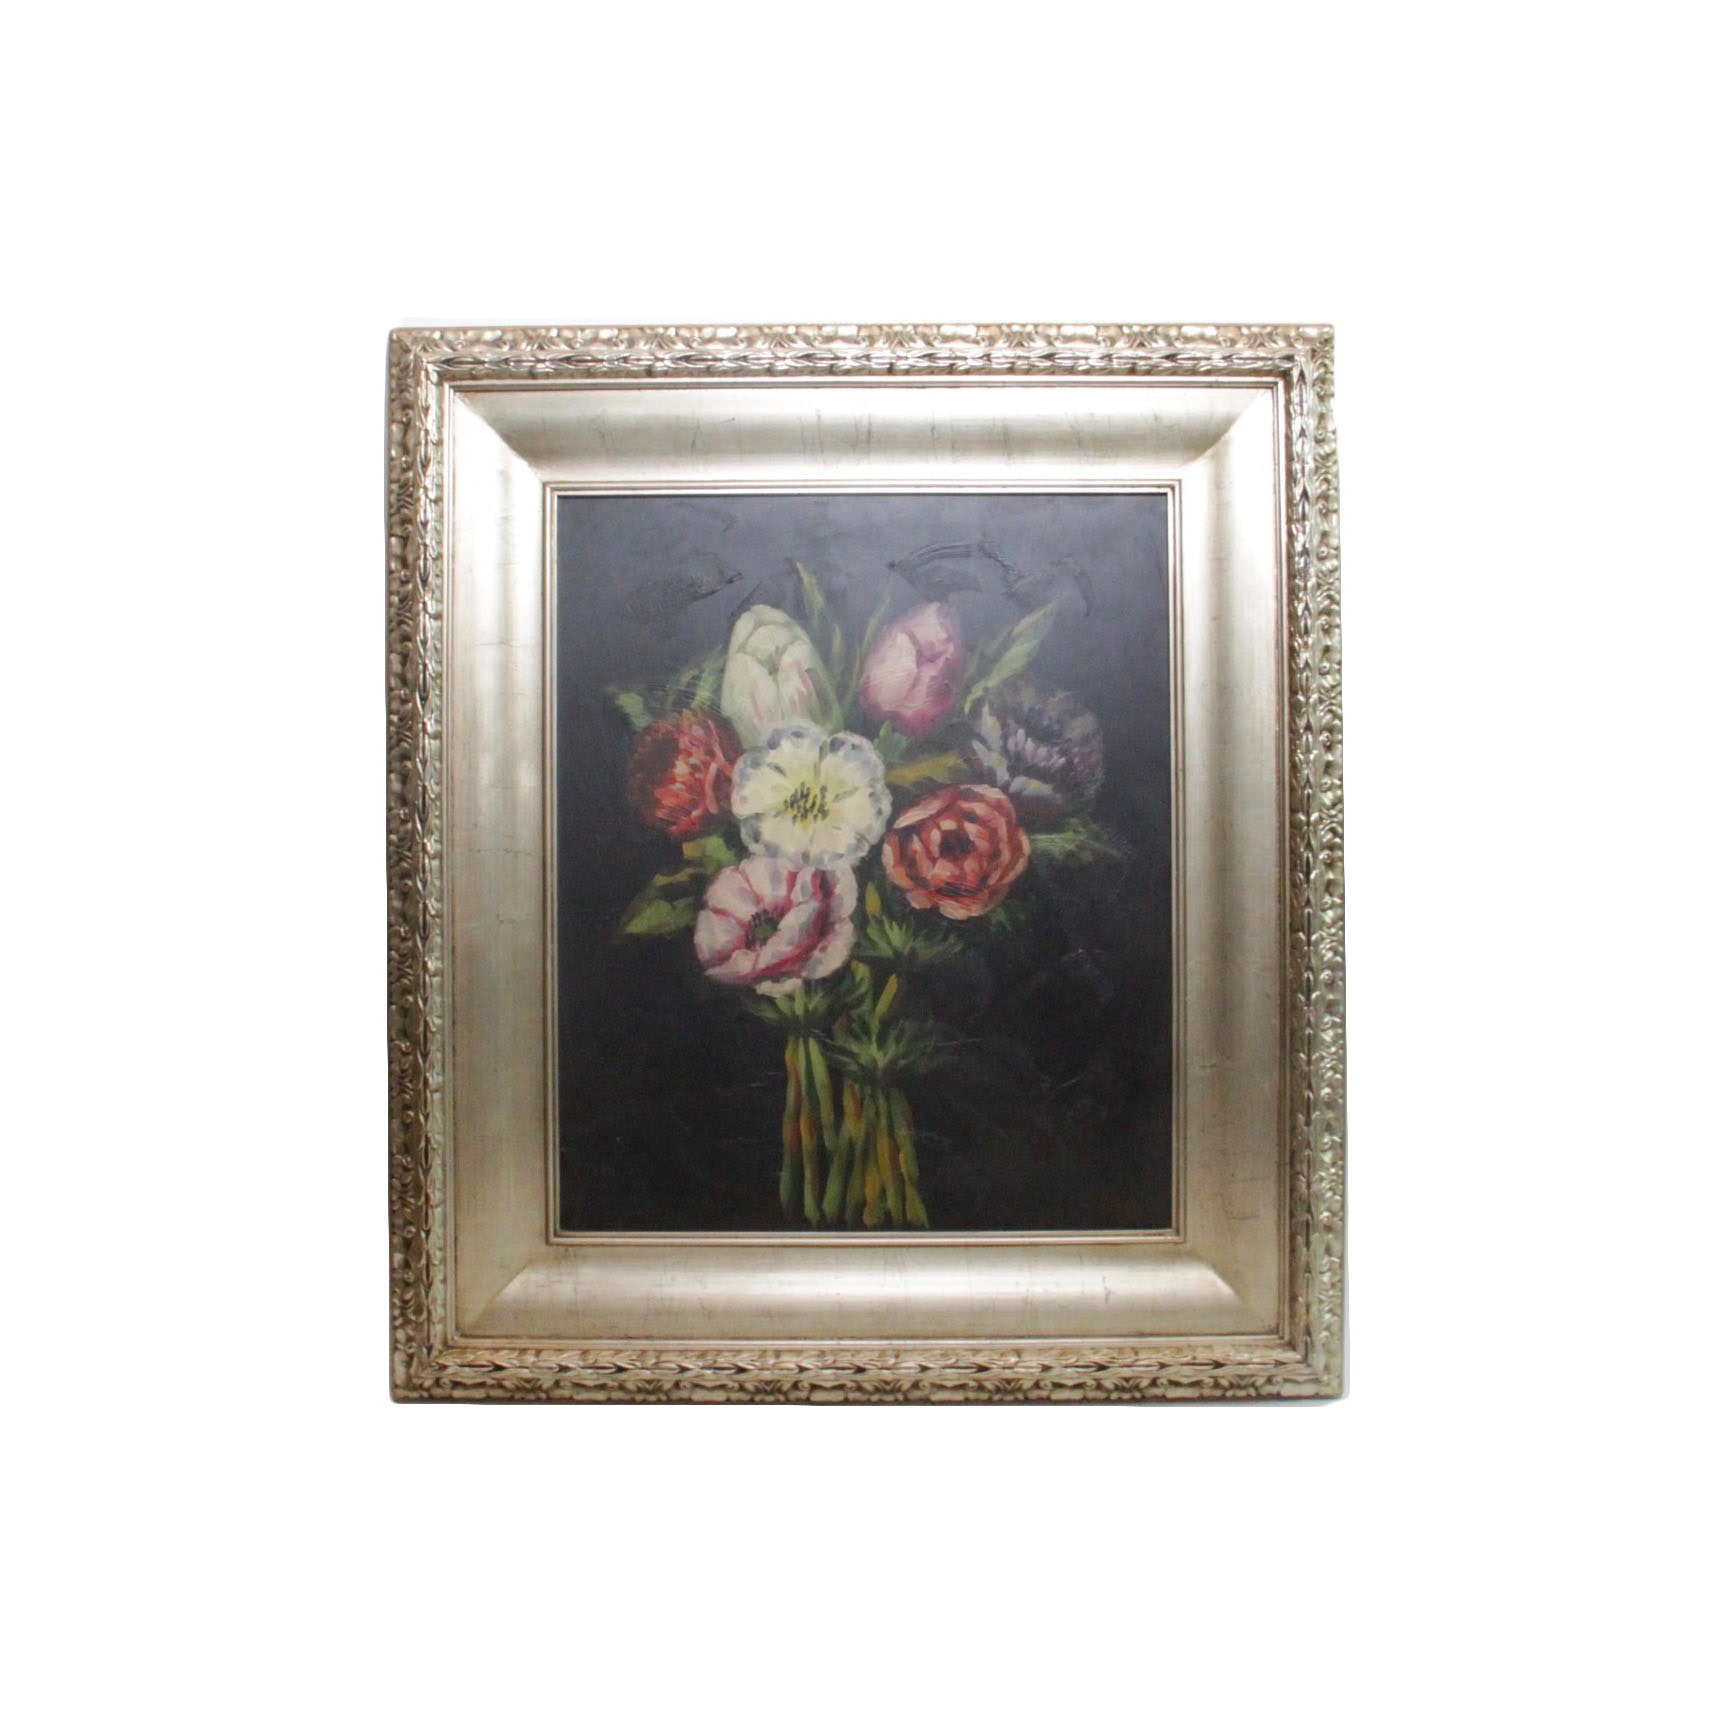 Oil Painting on Board of Flowers